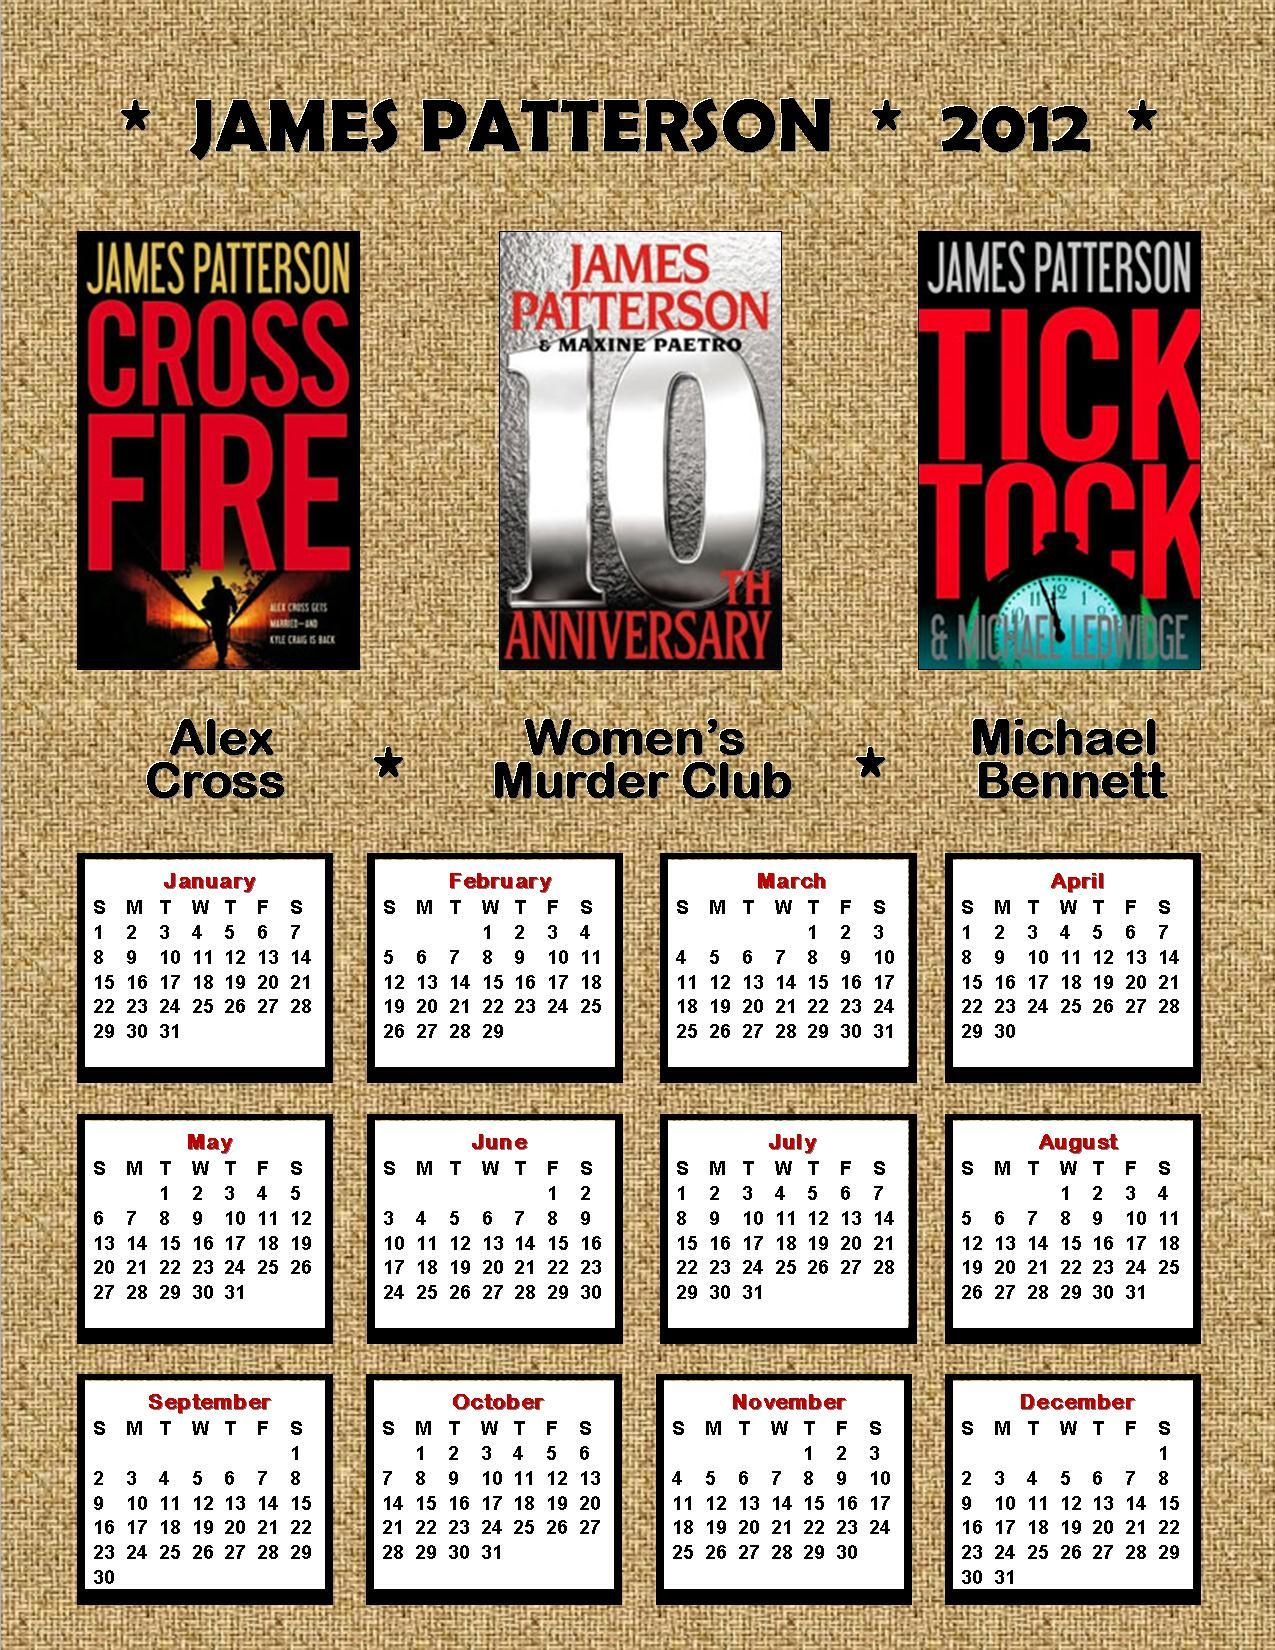 2012 James Patterson Calendar